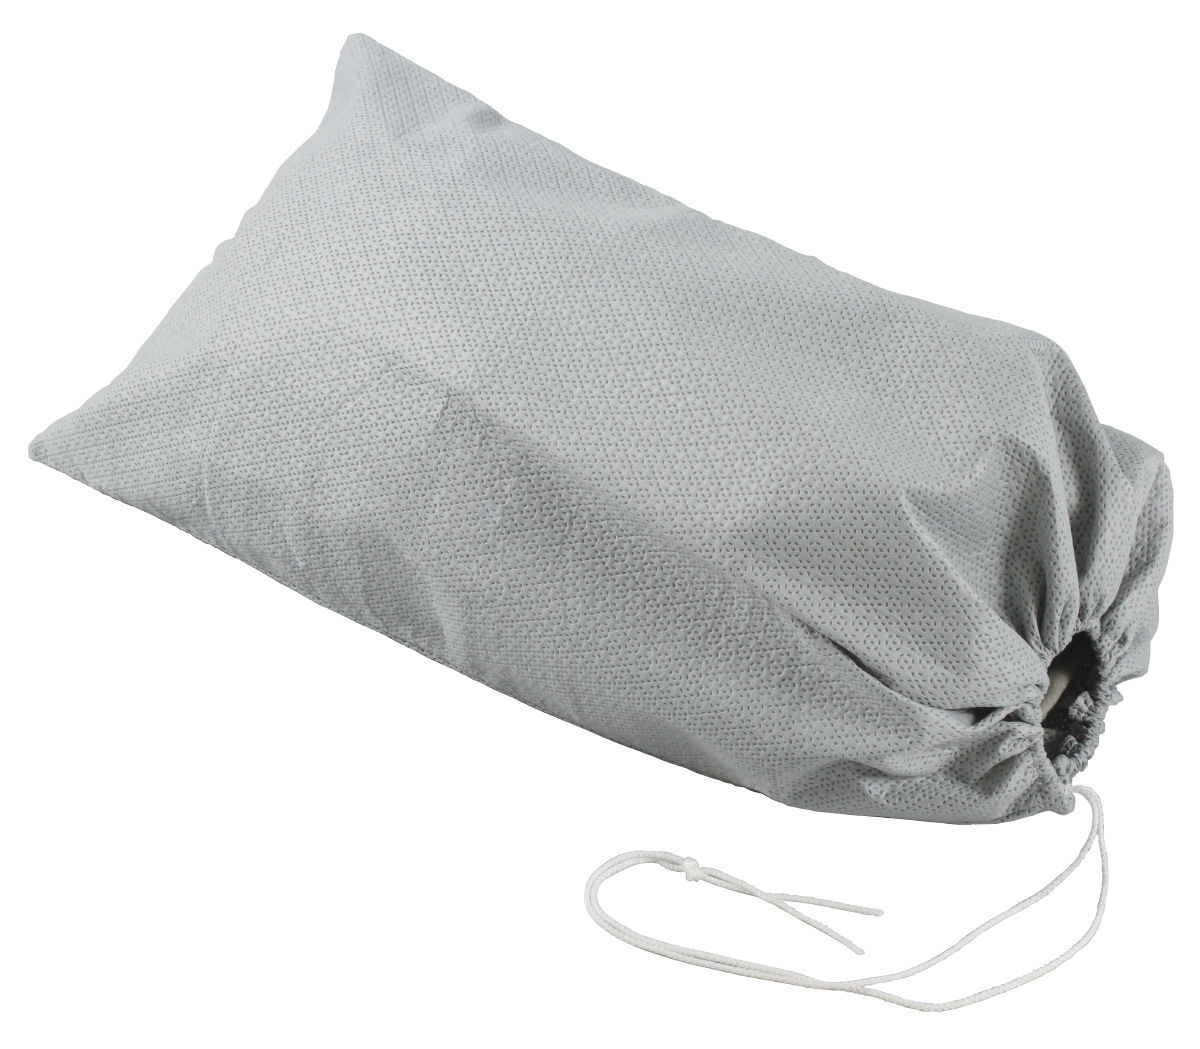 Photo of Car Cover Storage Bag